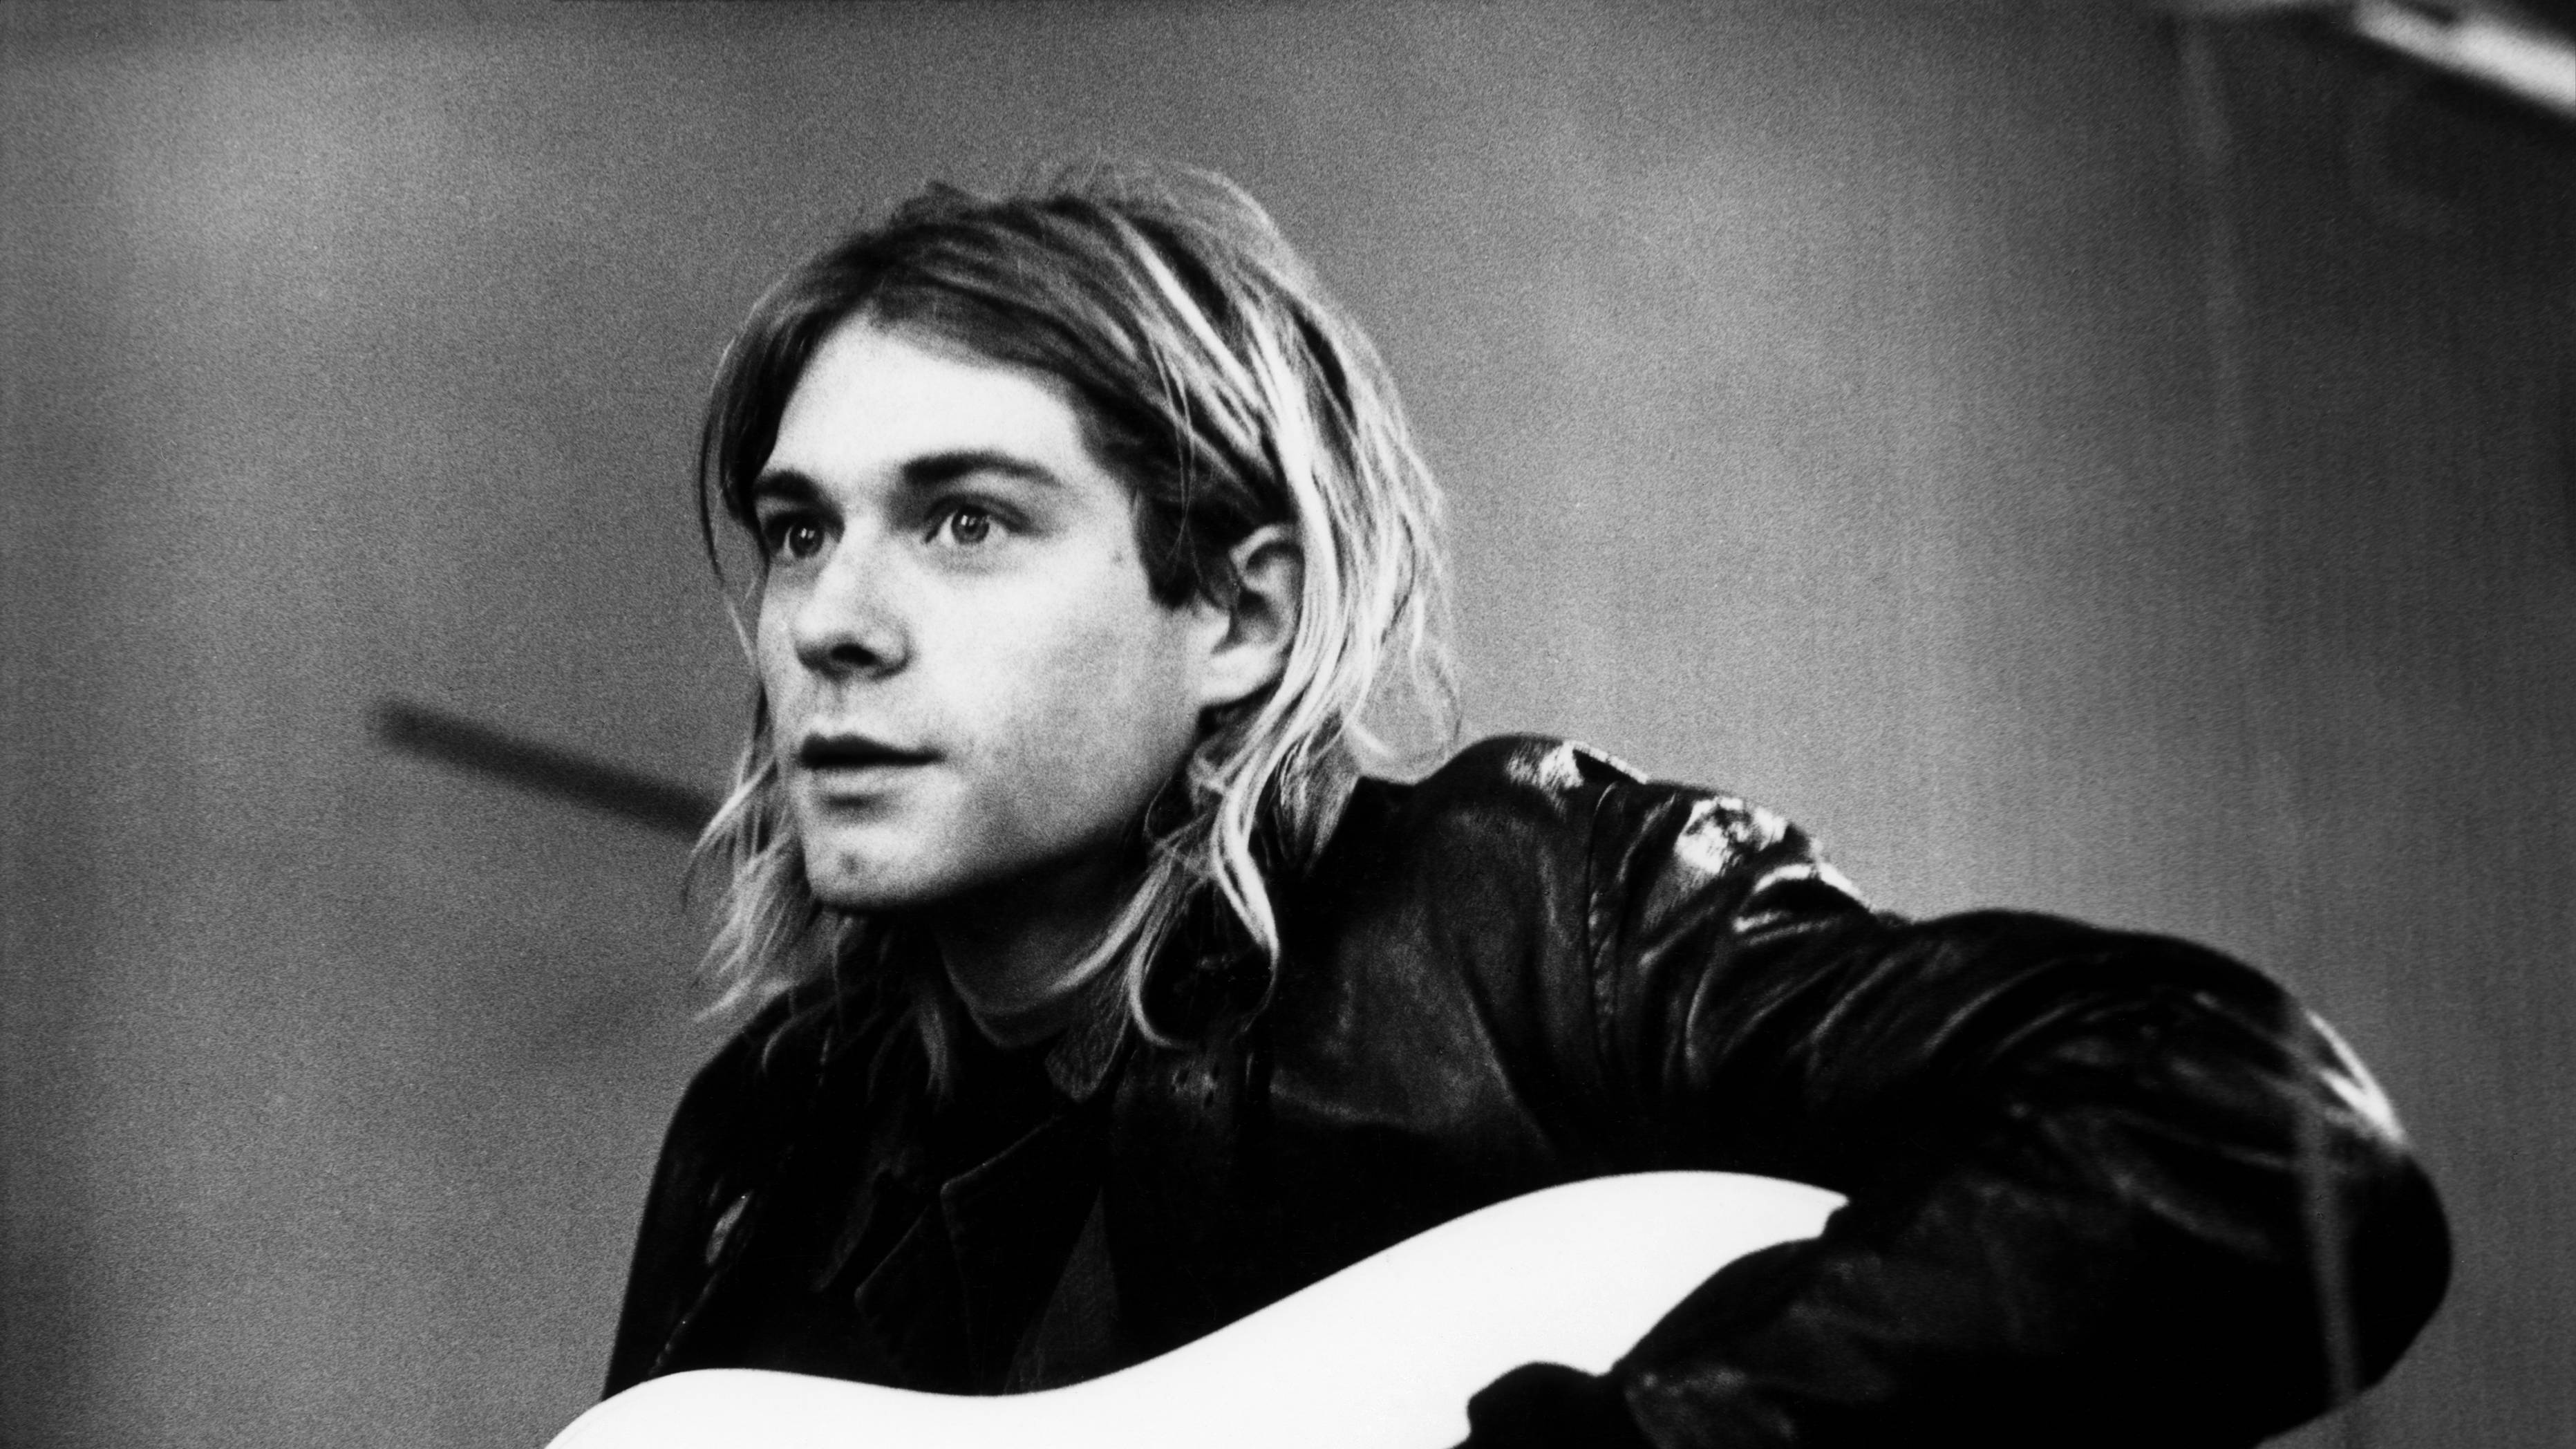 Have Nirvana's Nevermind master tapes been lost in a fire?